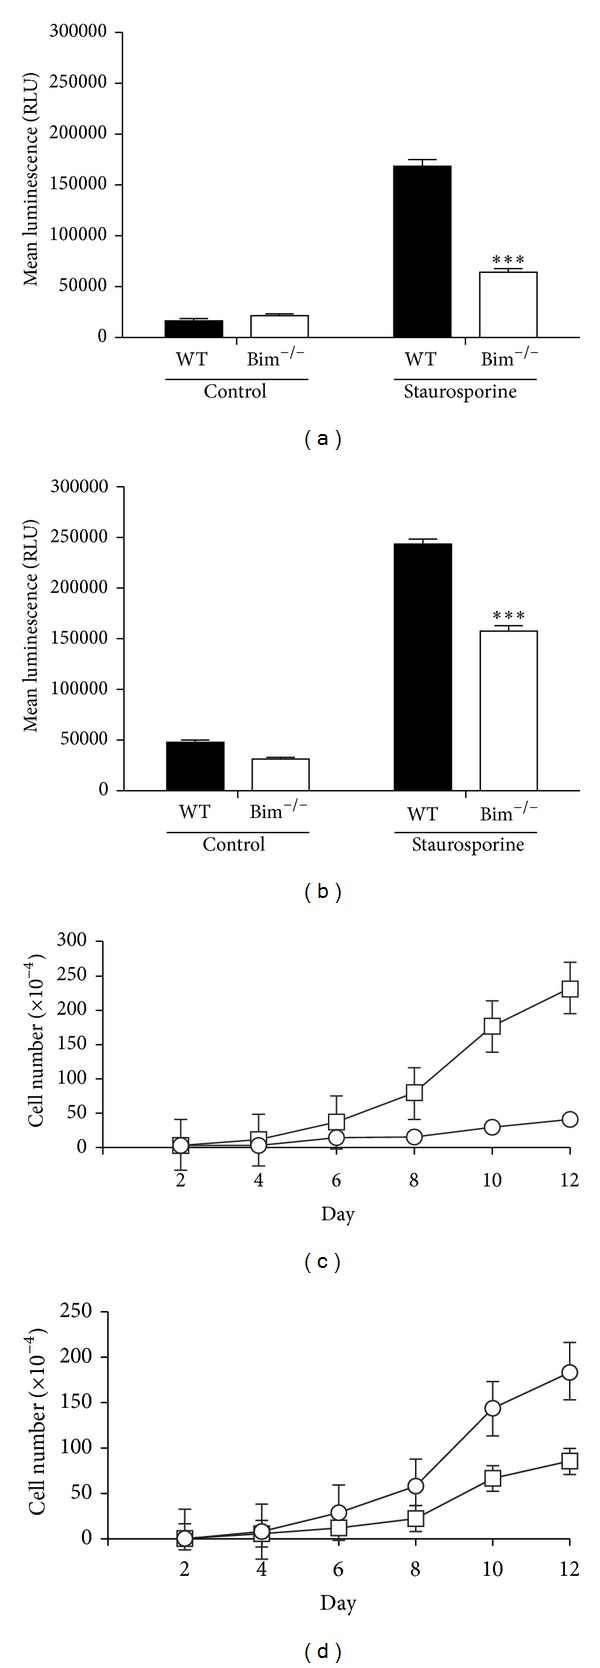 Modulation of proliferation in Bim −/− cells. Wild-type and Bim −/− retinal endothelial cells (panel (a)) and pericytes (panel (b)) were incubated with 10 nM staurosporine for 24 hours. Apoptosis was determined using a Caspase-Glo 3/7 assay. Wild-type and Bim −/− retinal endothelial cells (panel (c)) and pericytes (panel (d)) were monitored for their growth rate over a two-week time frame for wild-type (○) and Bim −/− (□) cells. These experiments were repeated twice with similar results (*** P